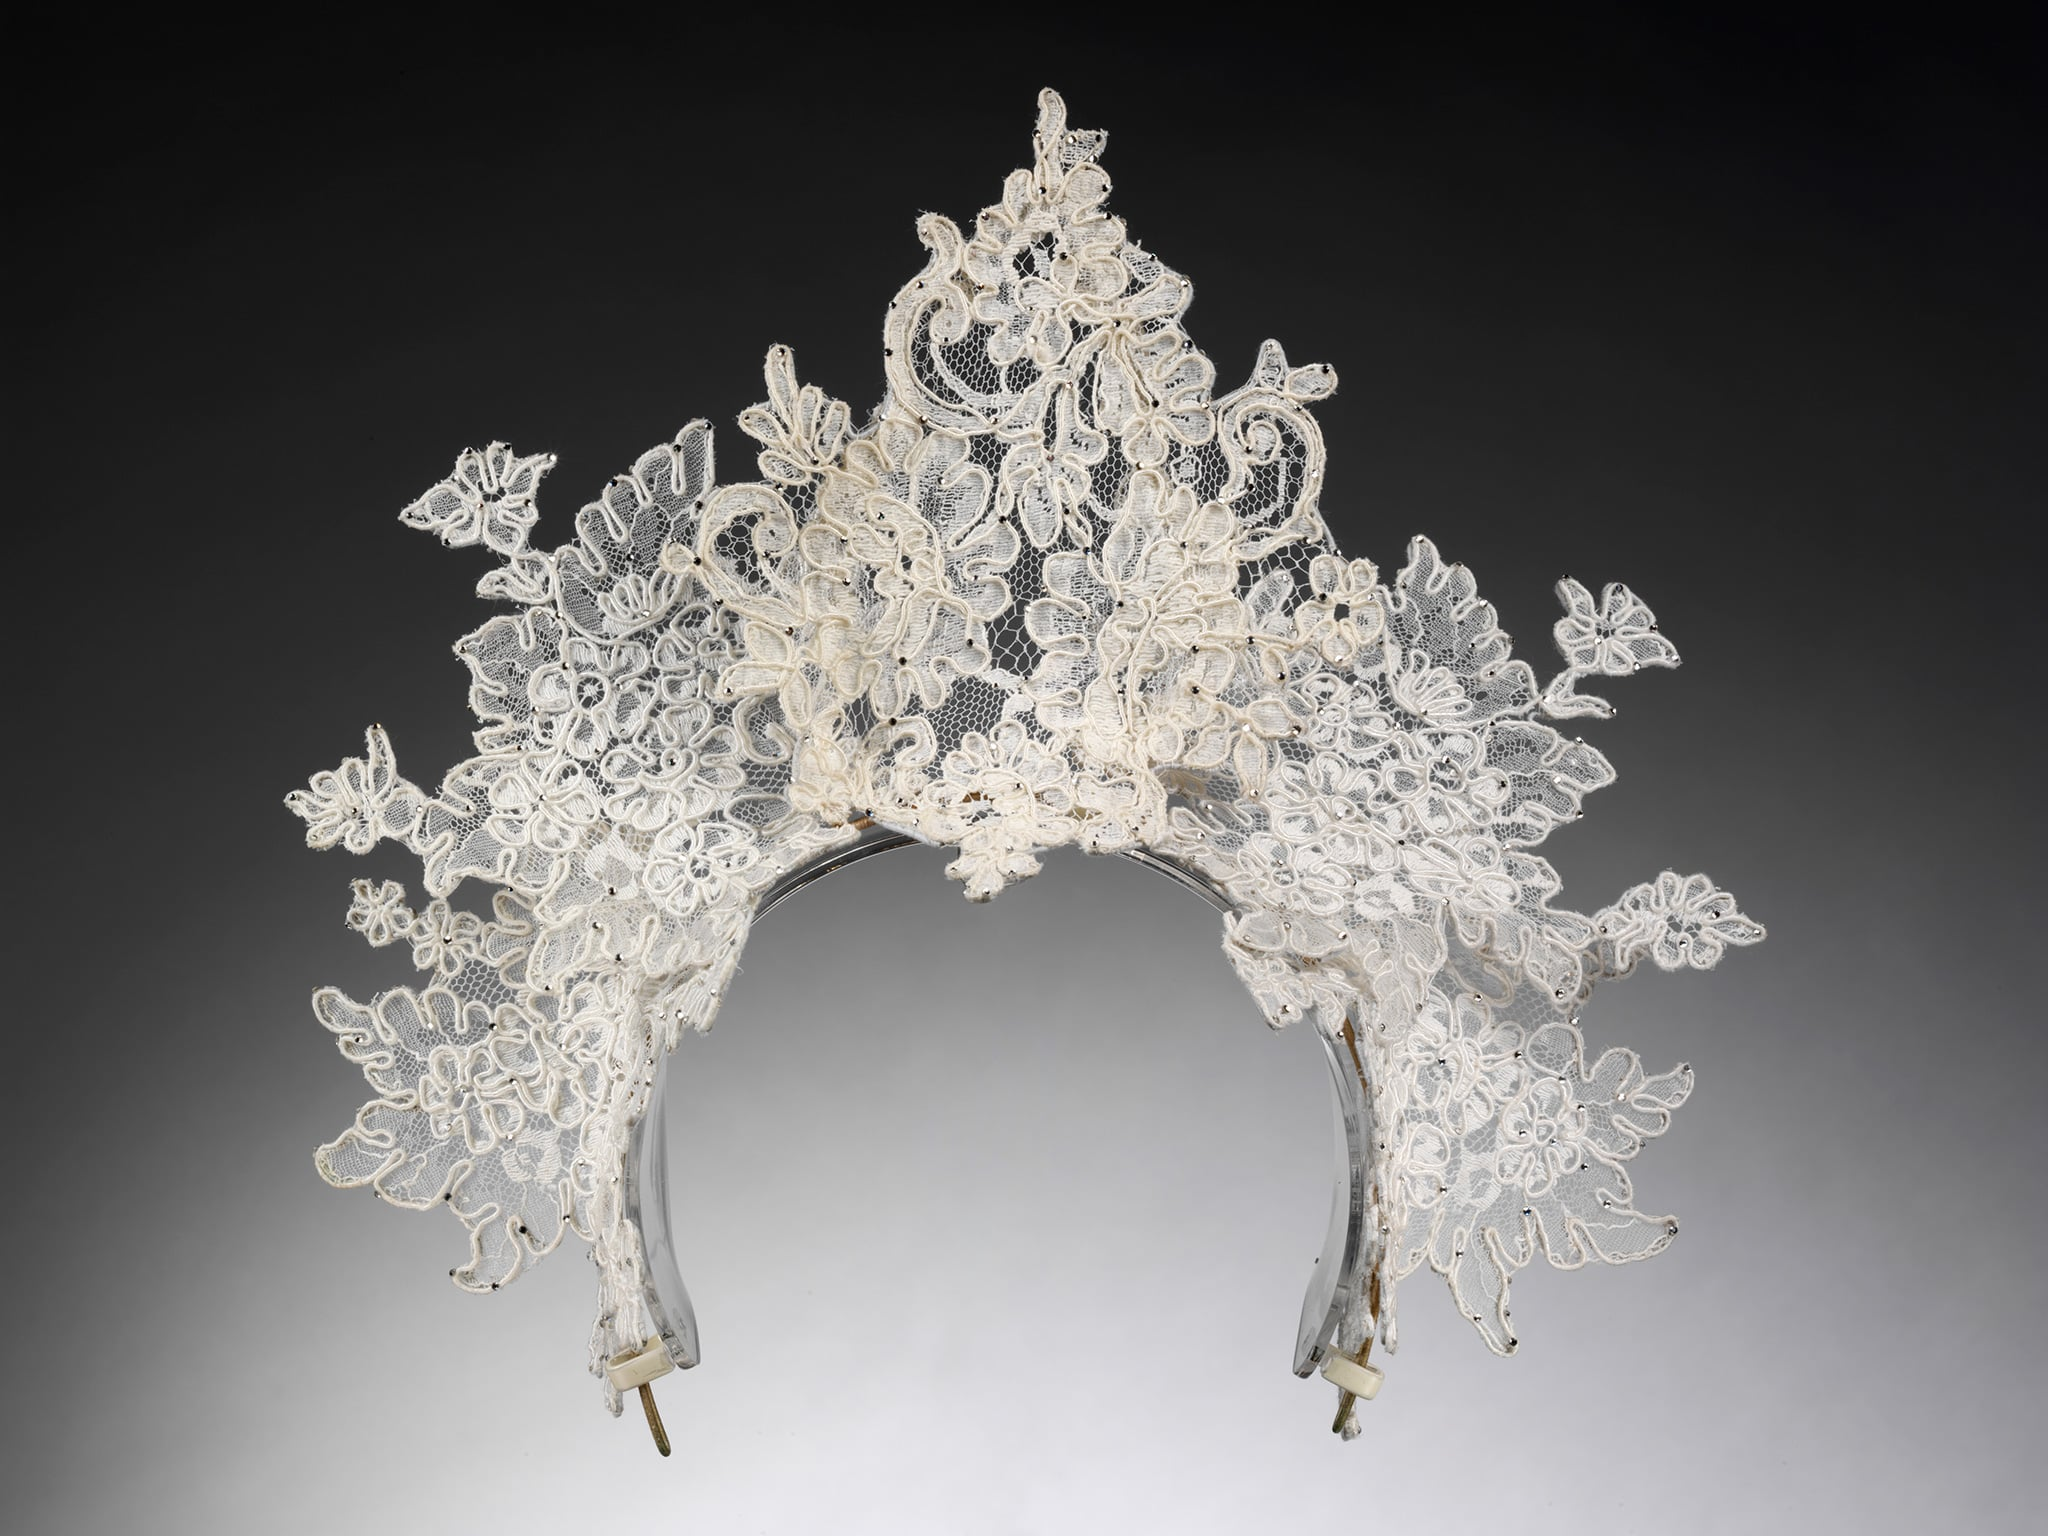 Antique lace tiara created by Philip Treacy, London. Designed for Nina Farnell-Watson for her wedding to Edward Tryon, 2008